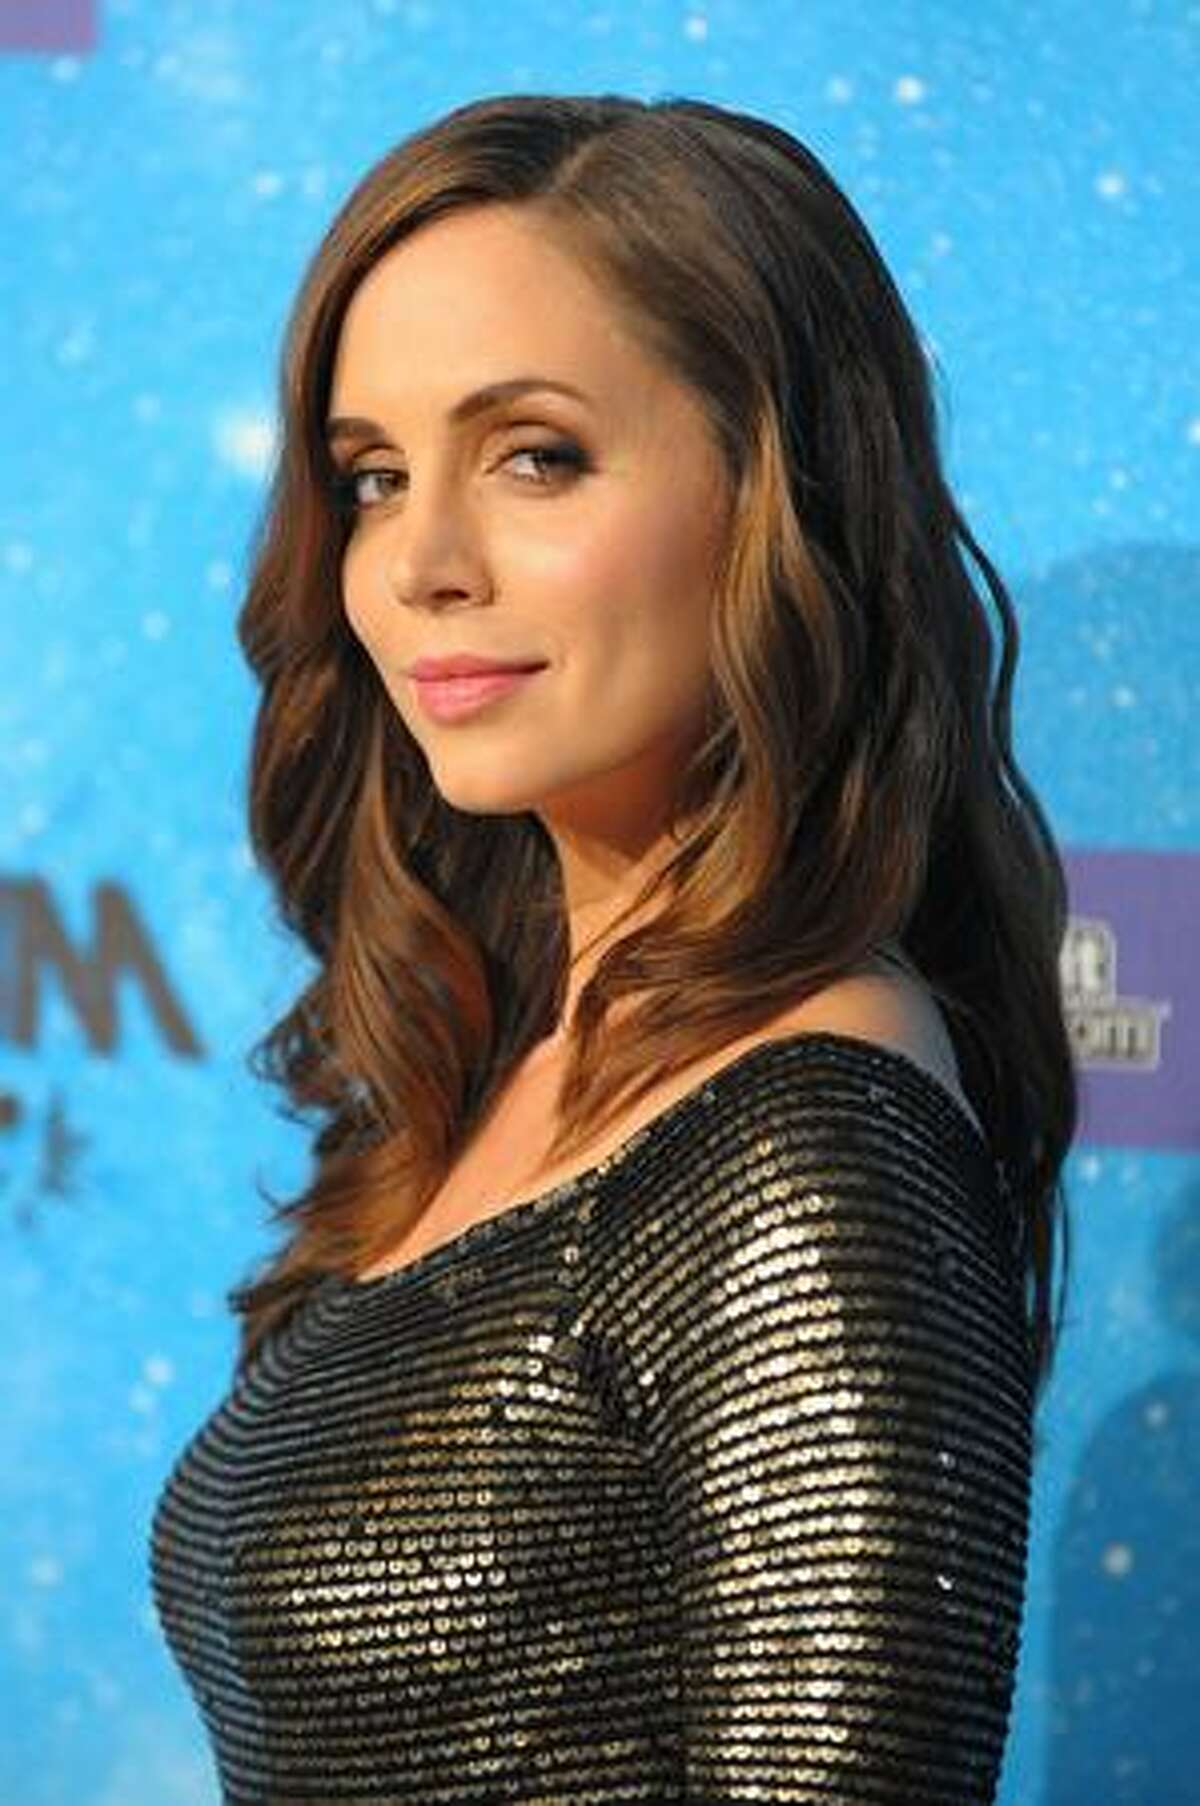 Actress Eliza Dushku arrives at Spike TV's Scream 2009 held at the Greek Theatre in Los Angeles on Saturday, Oct. 17, 2009.